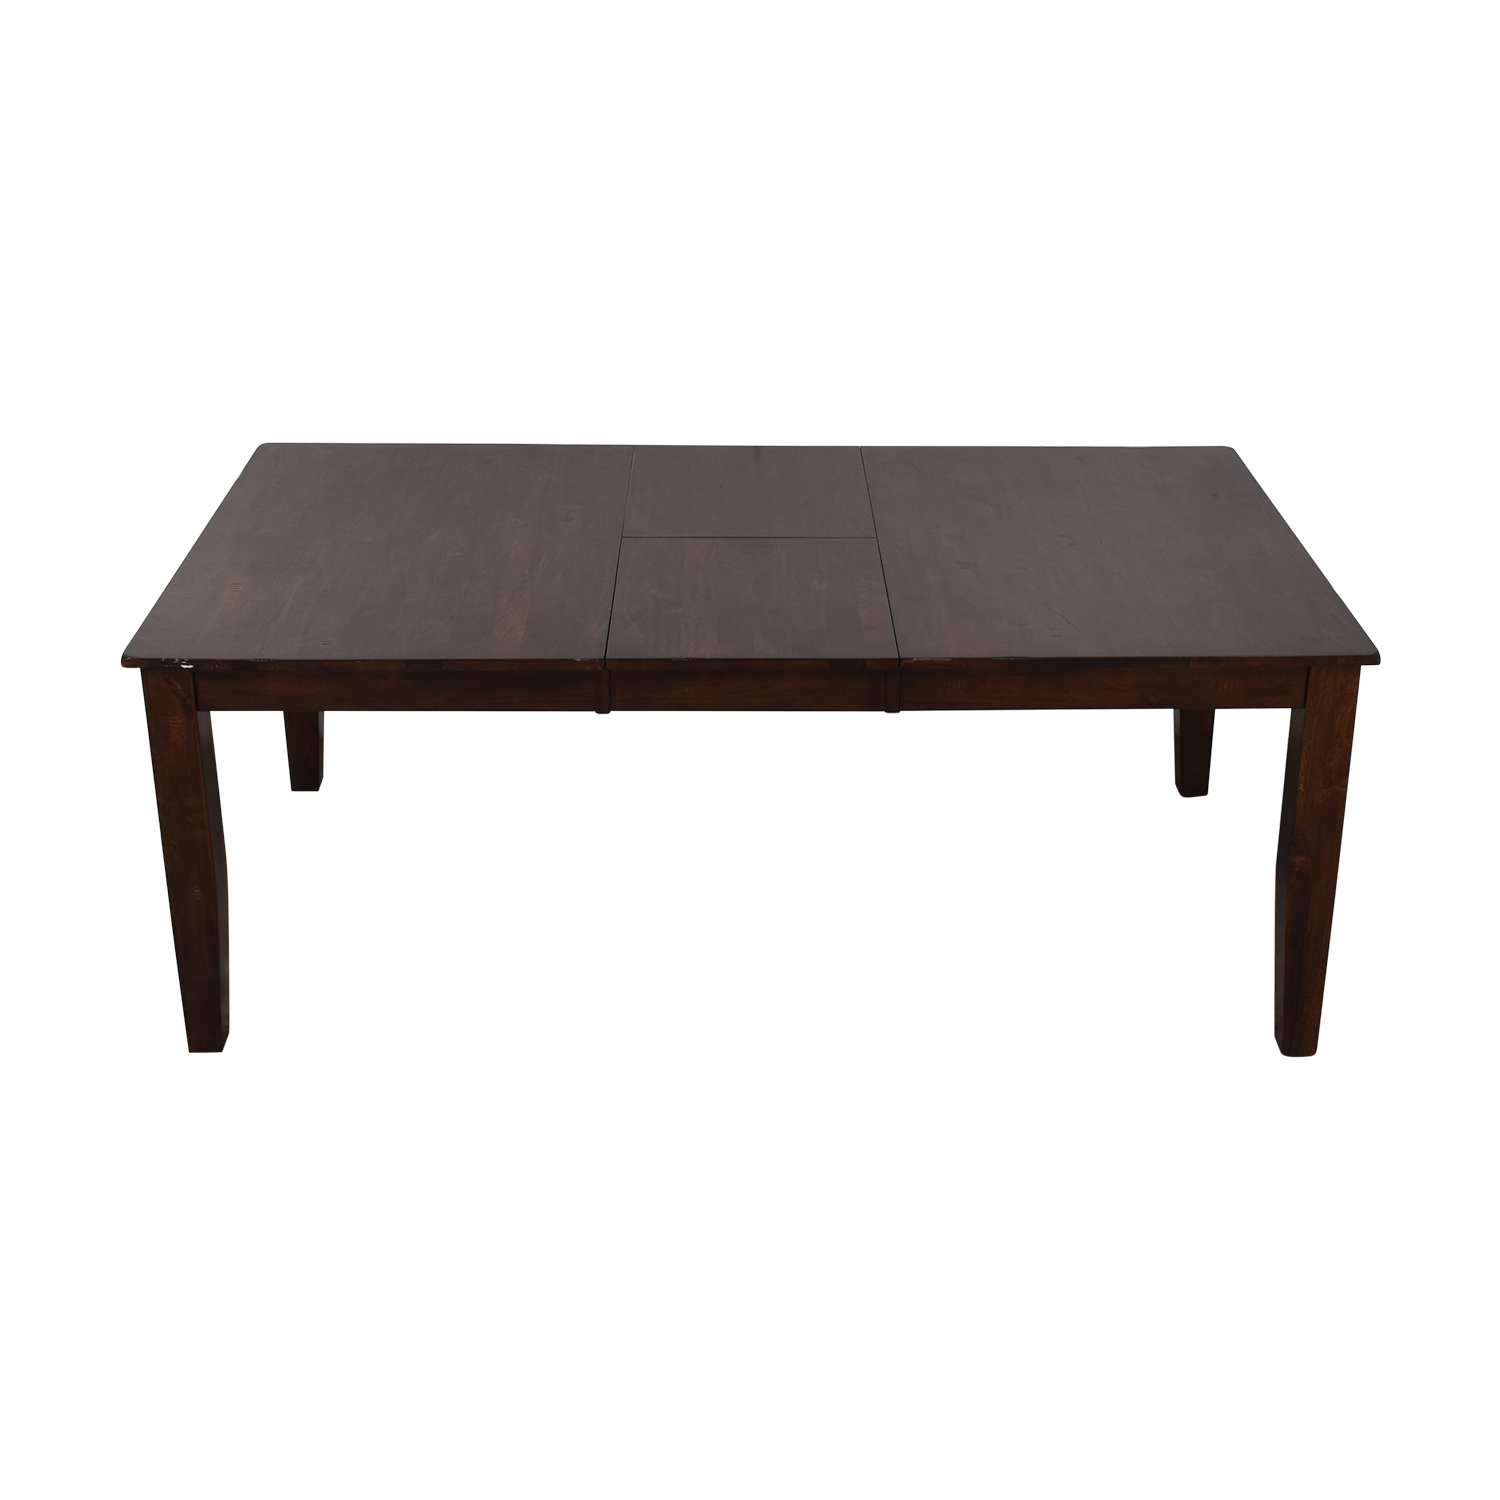 Raymour & Flanigan Kona Dining Table with Leaf / Tables